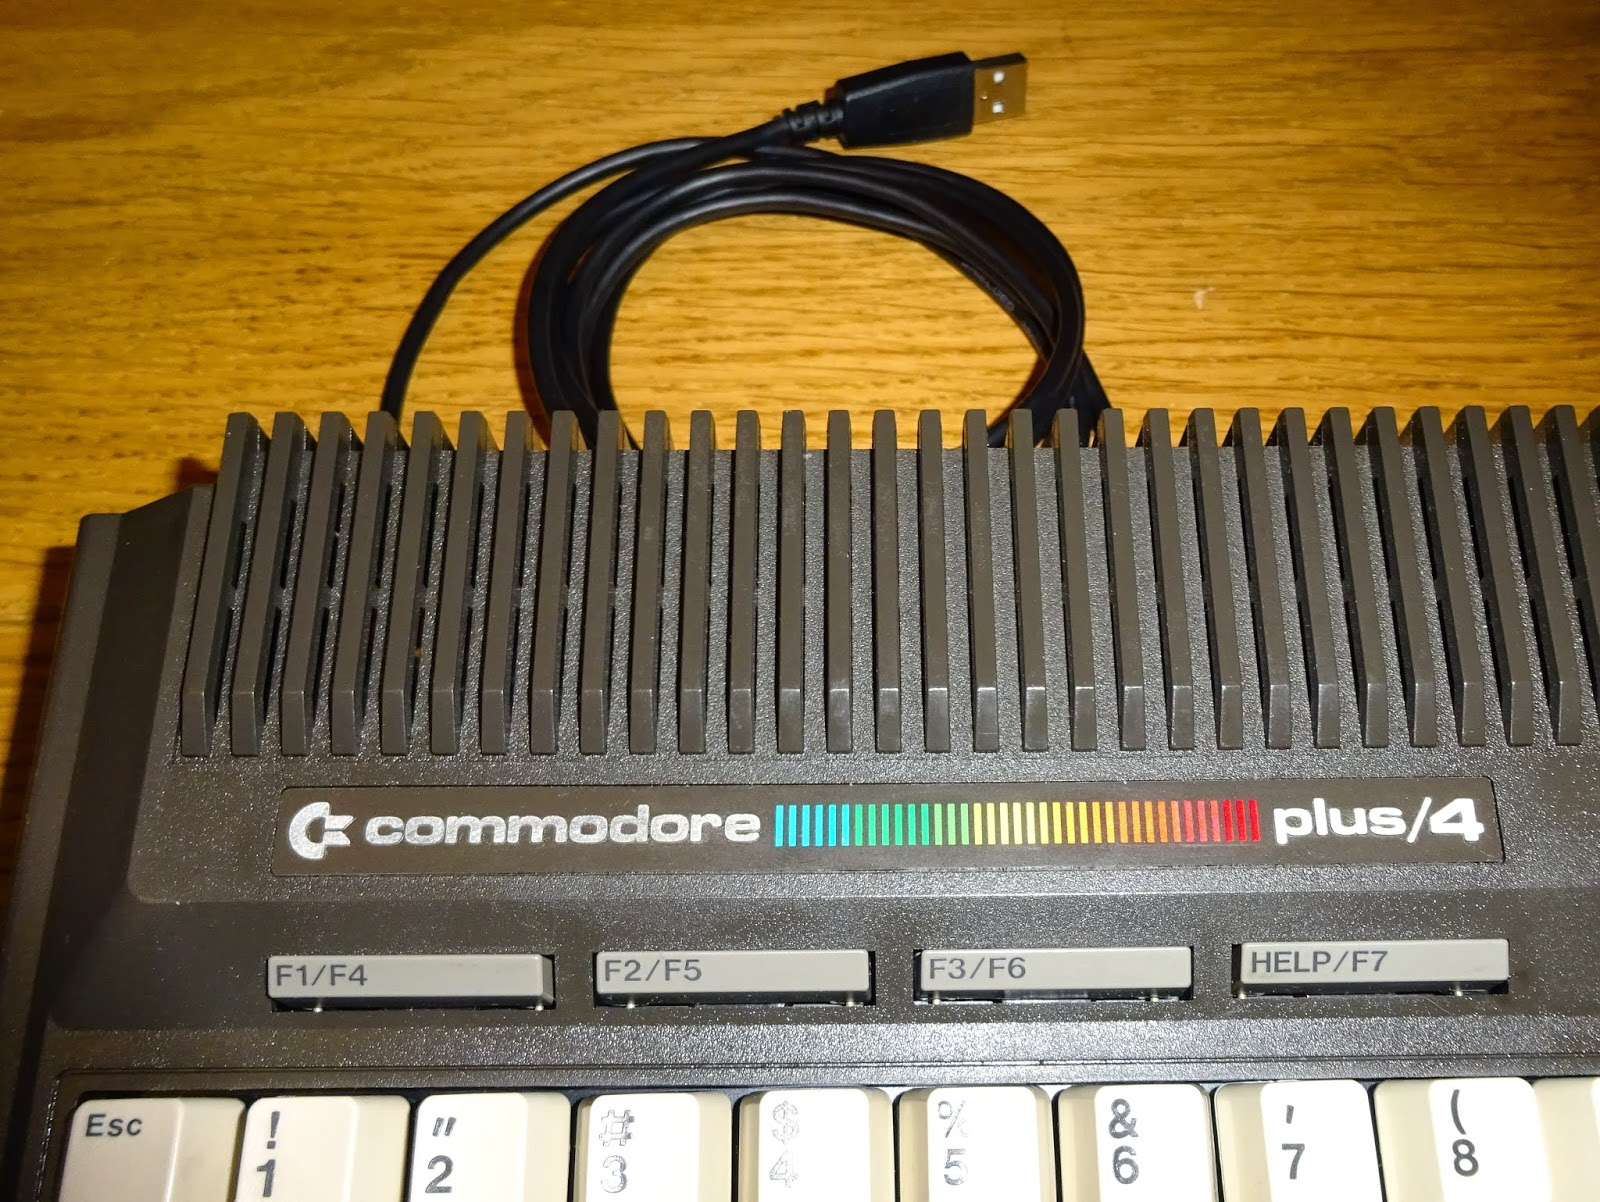 Tynemouth Software: Commodore plus/4 USB Keyboard